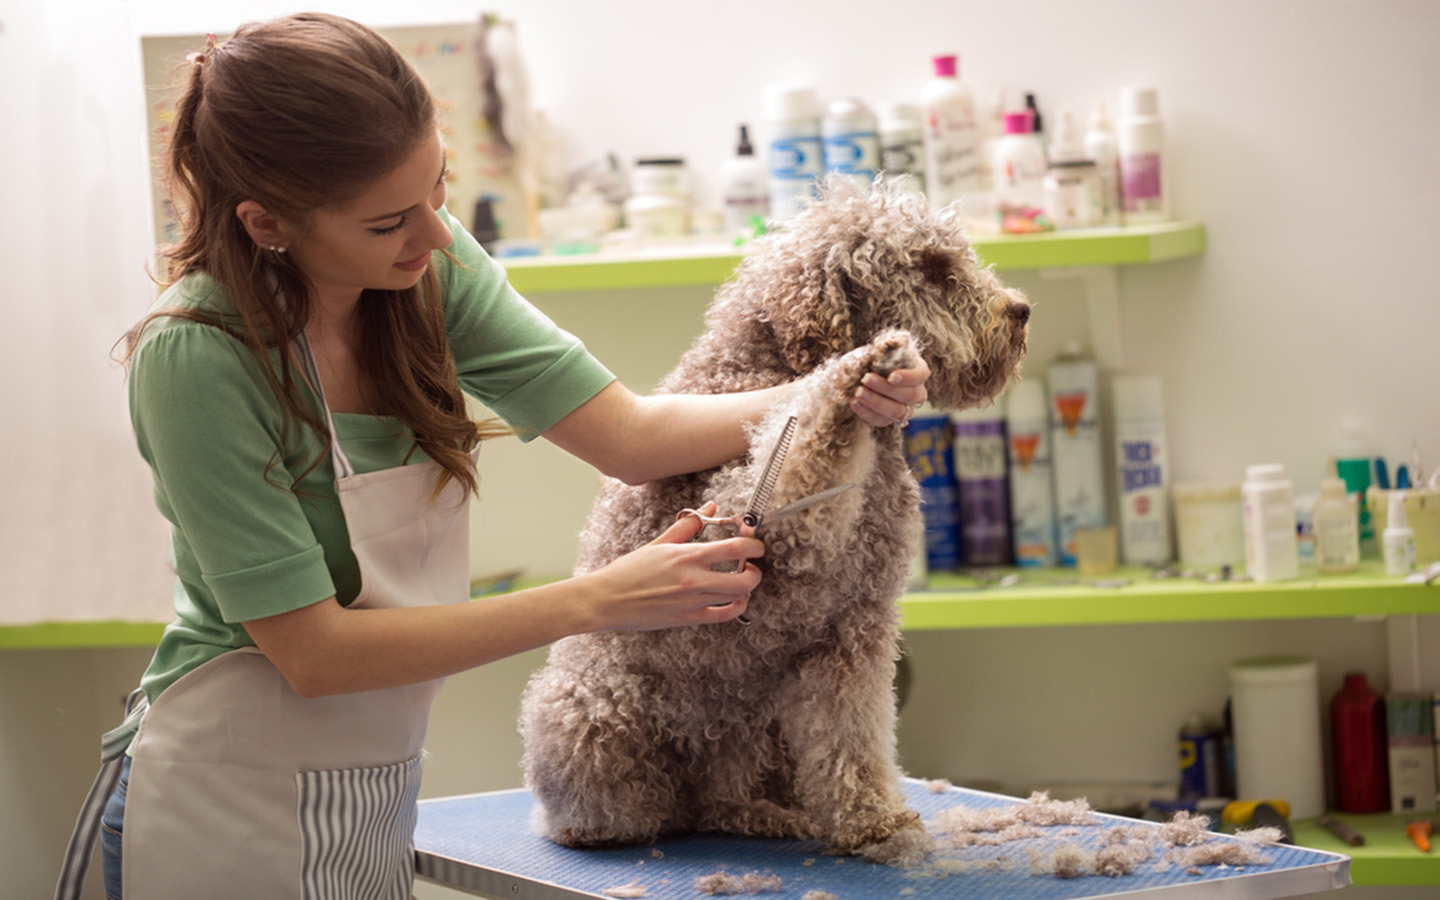 Pet dog being groomed